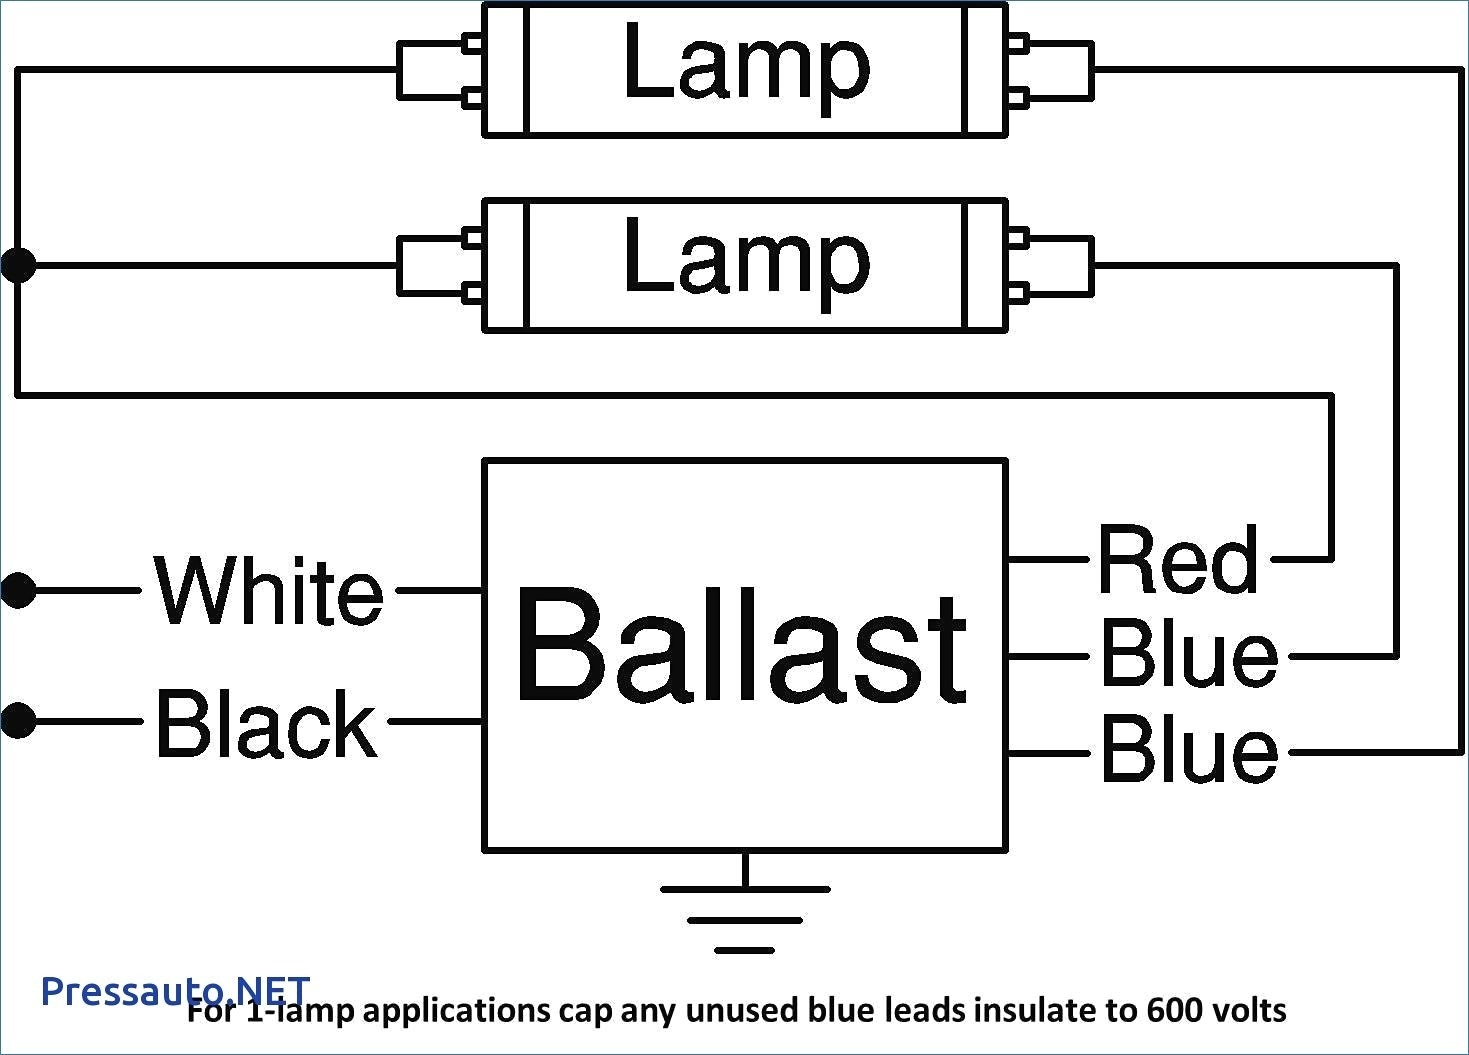 f96t12 ballast wiring diagram 9 7 fearless wonder de \u2022f96t12 ballast  wiring diagram light online